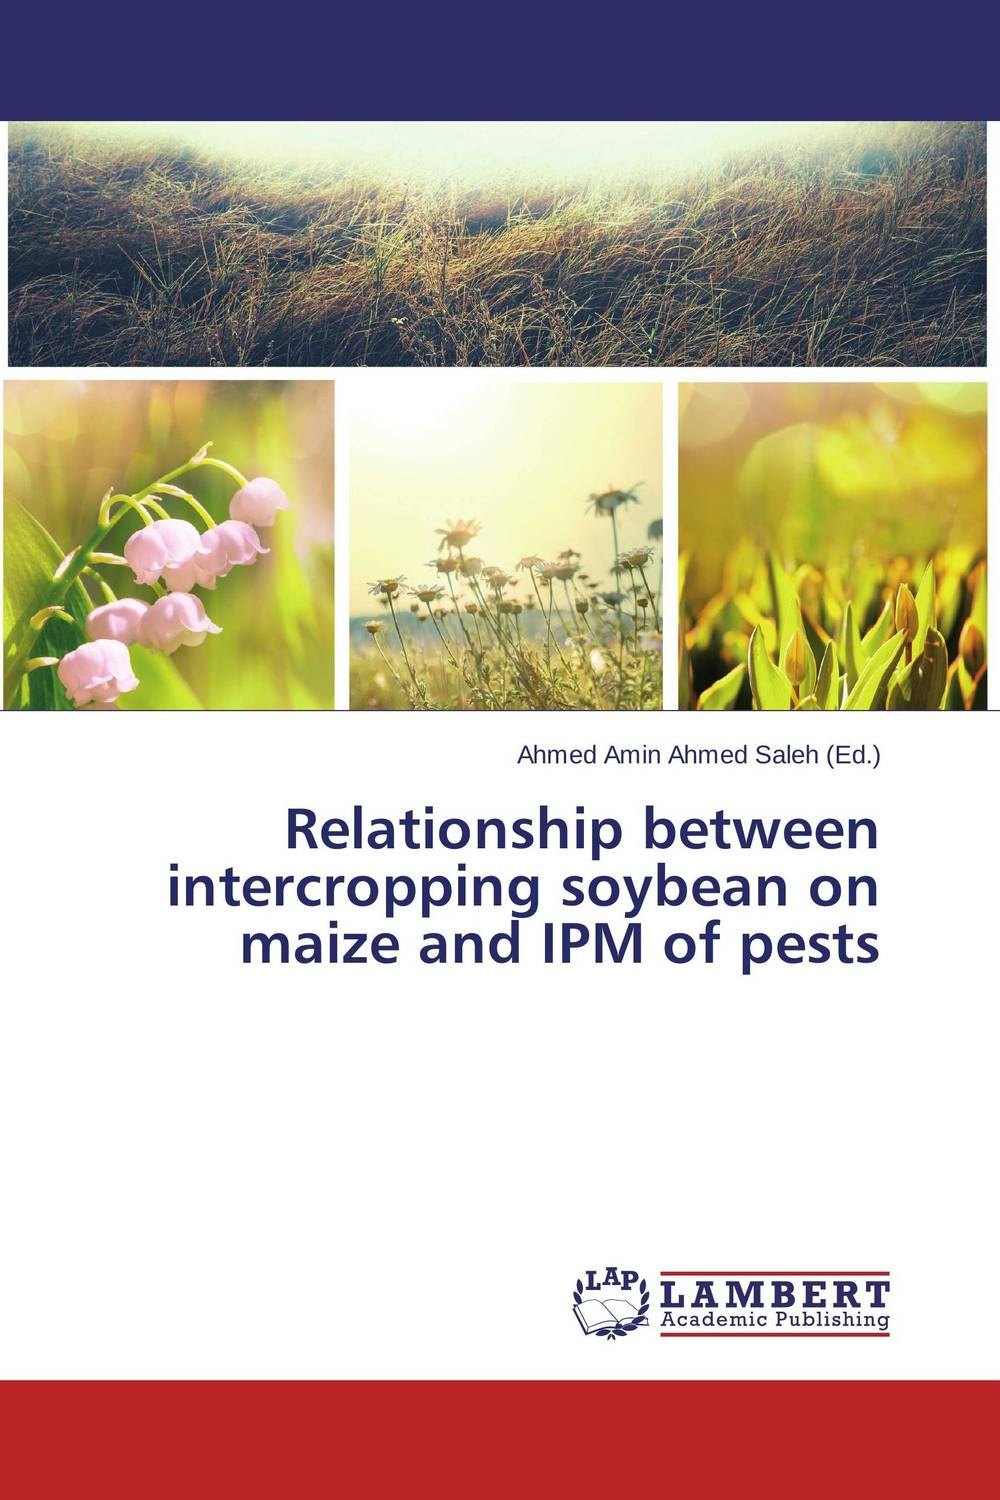 Relationship between intercropping soybean on maize and IPM of pests eman ibrahim el sayed abdel wahab molecular genetic characterization studies of some soybean cultivars